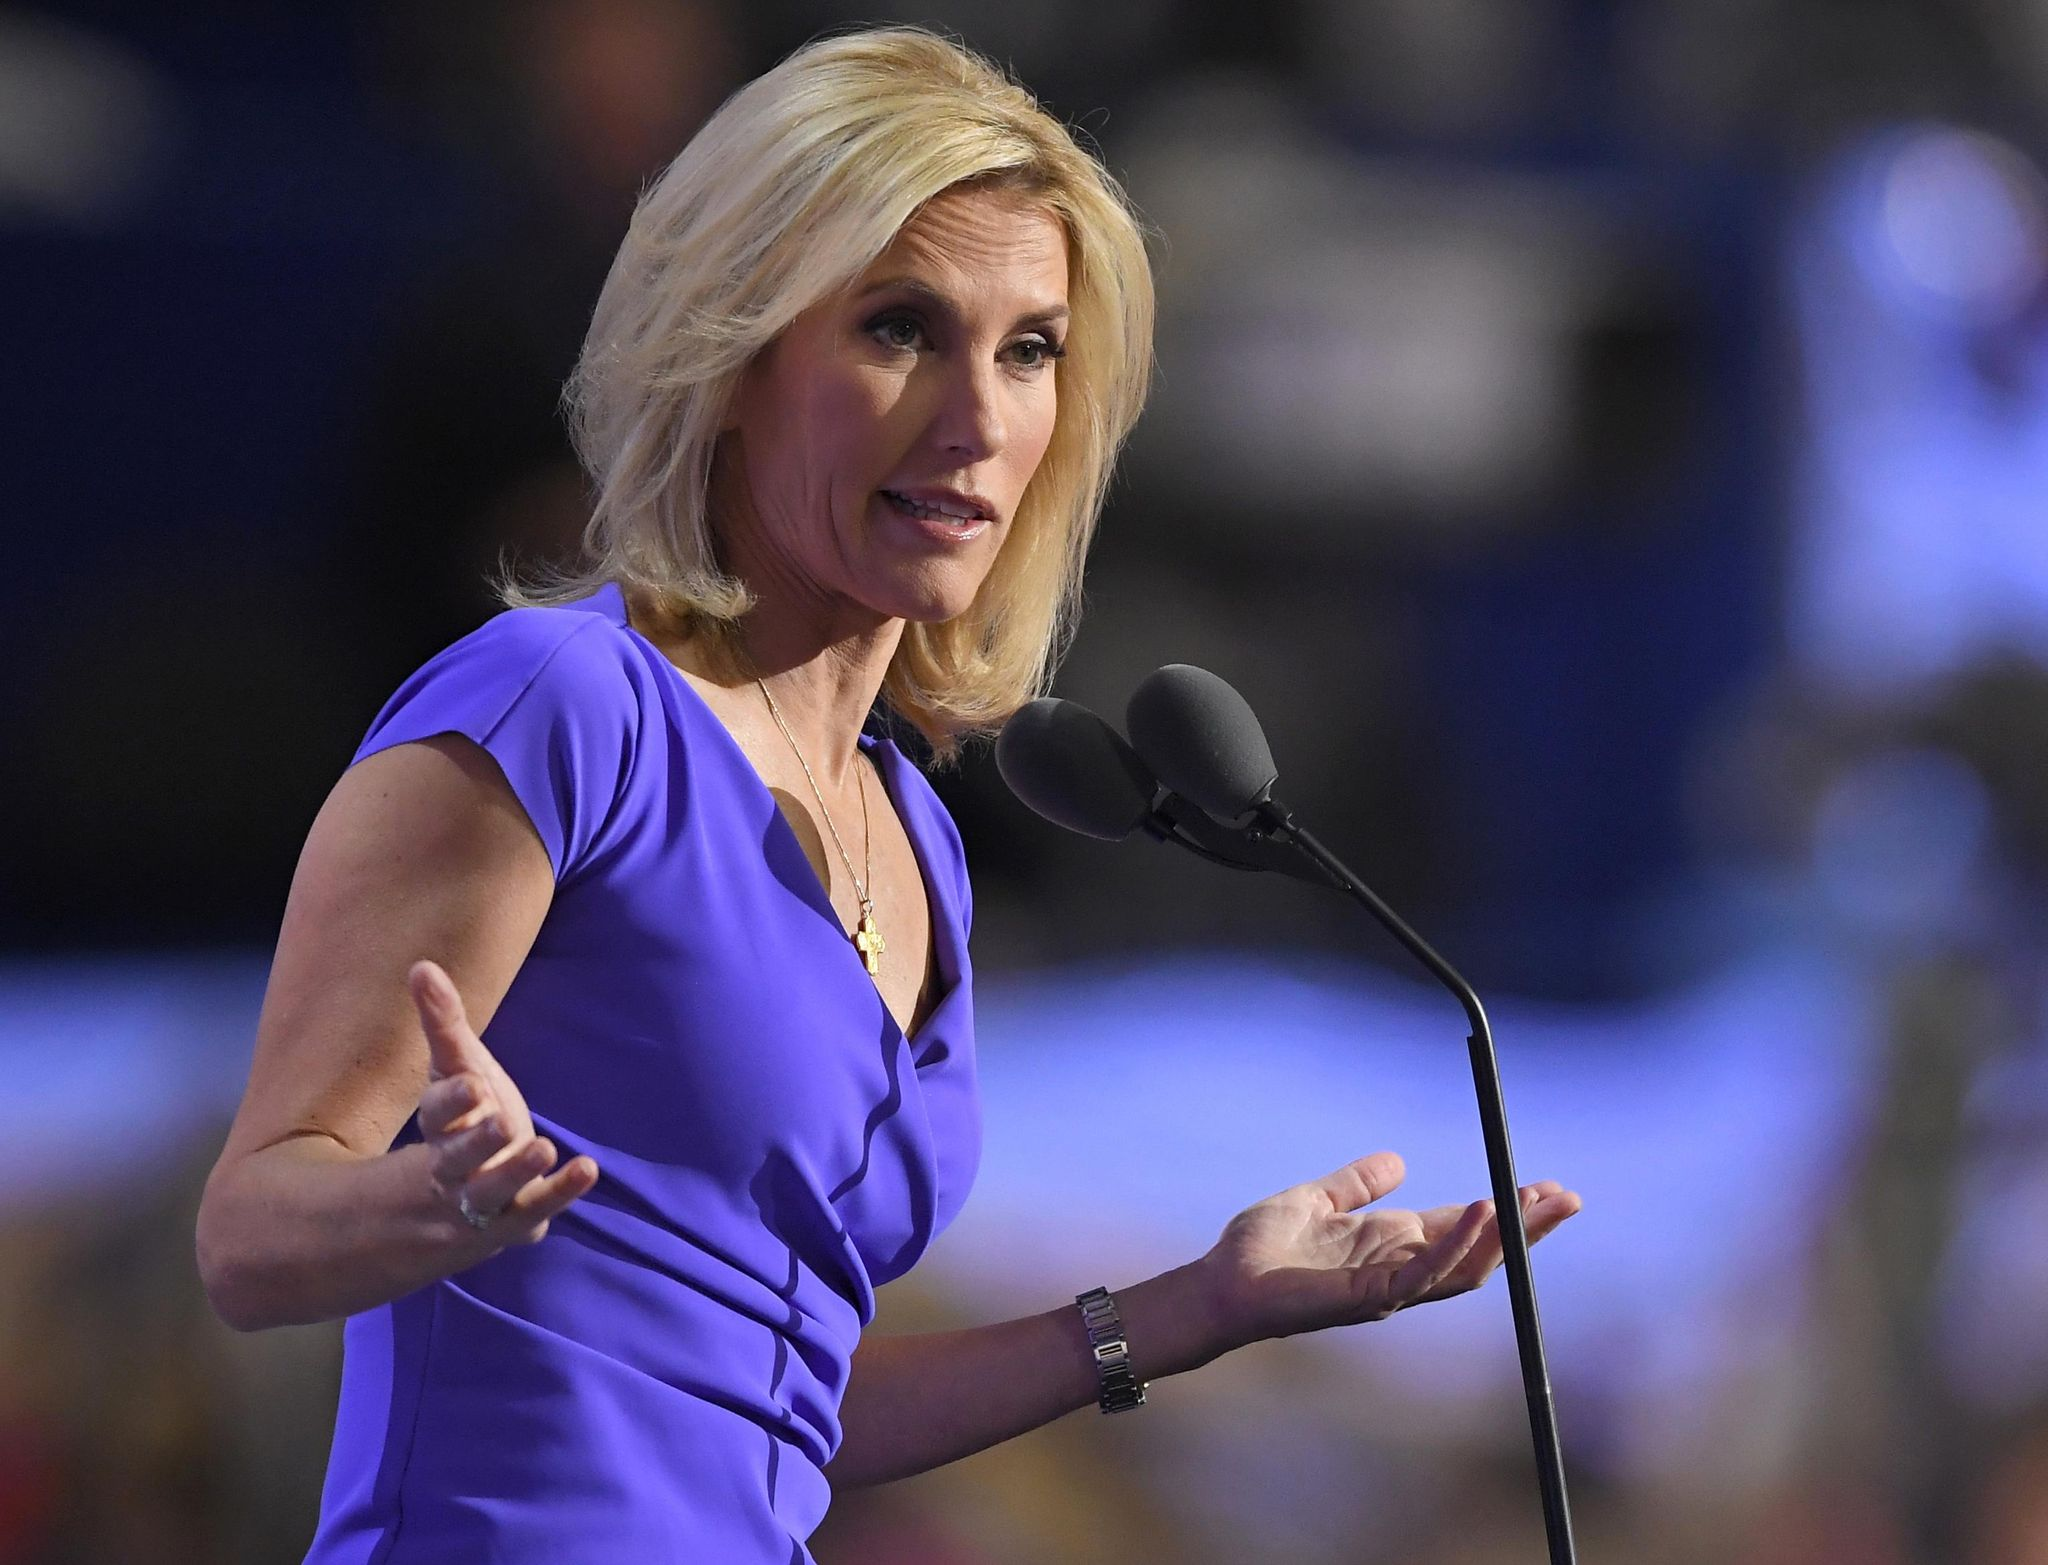 Laura Ingraham compares Confederate statue protesters to ISIS